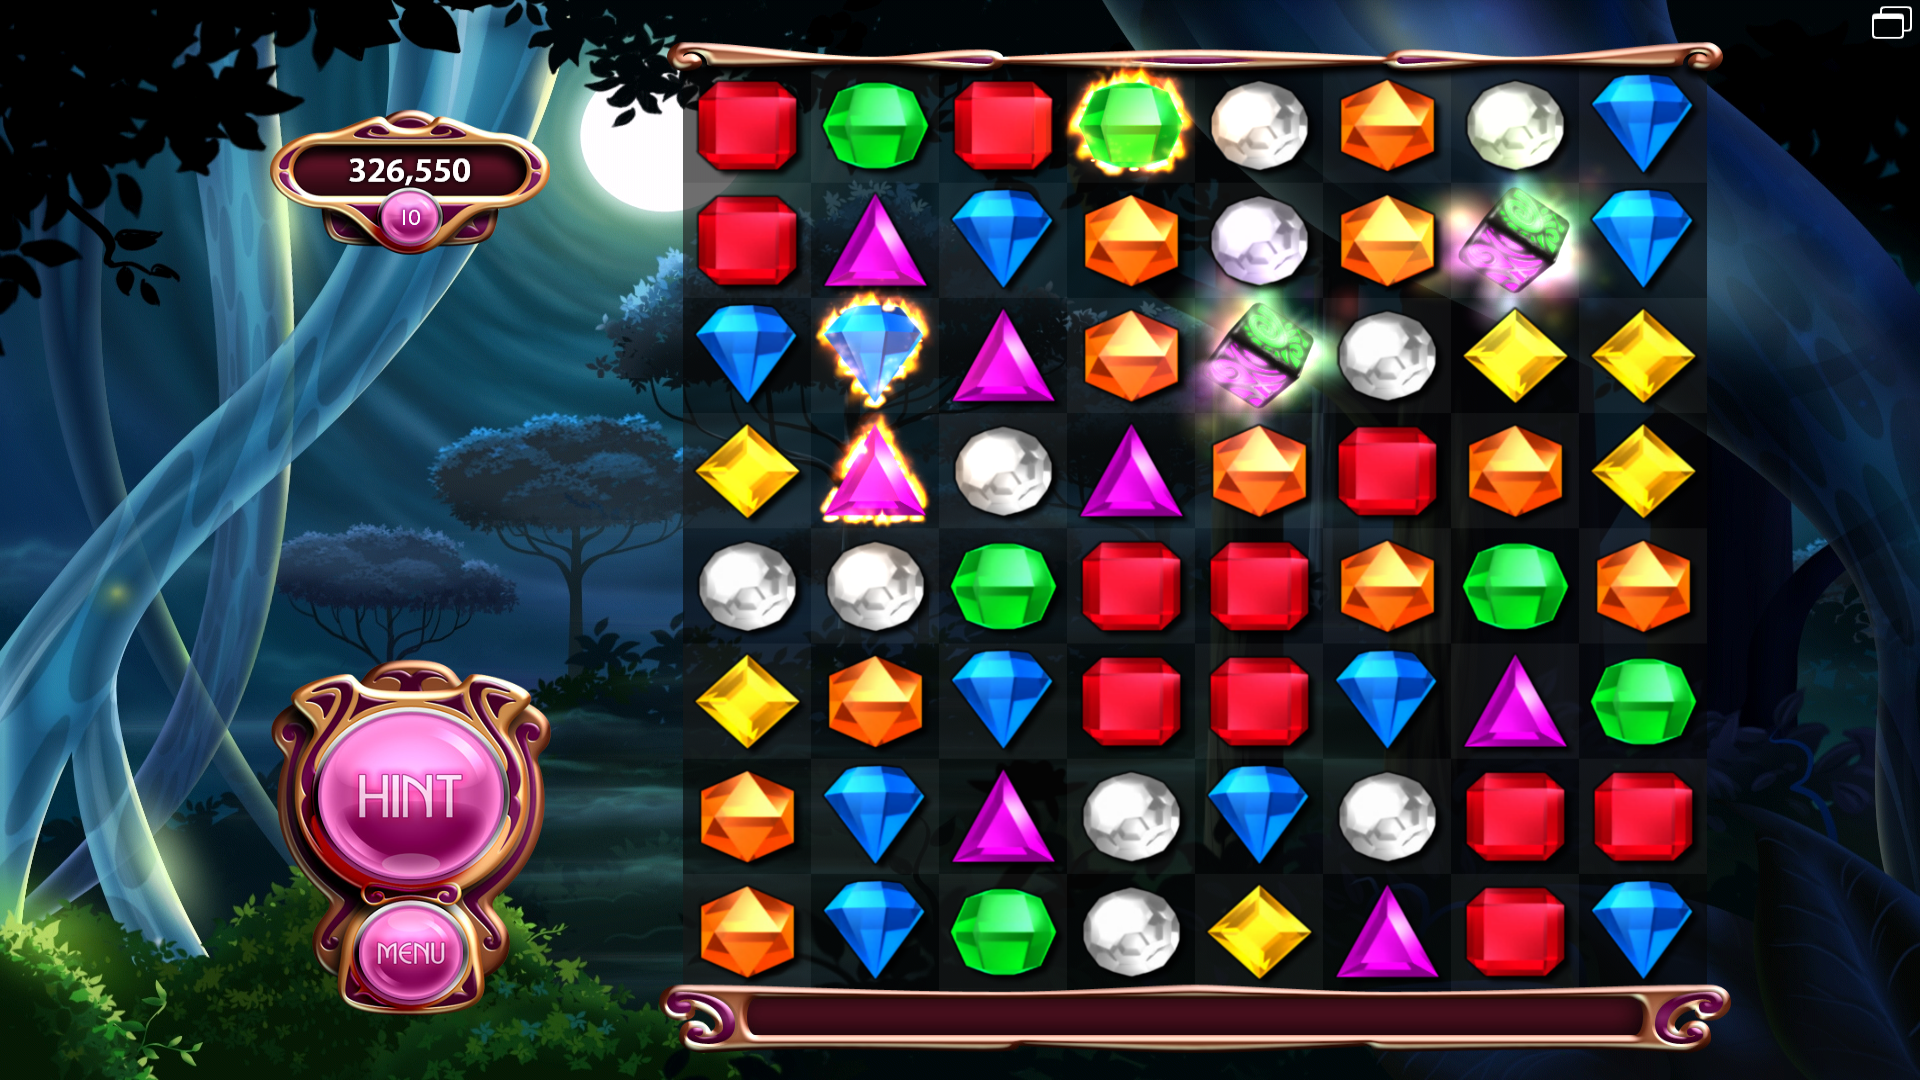 Bejeweled 3 bejeweled wiki fandom powered by wikia for Classic 3